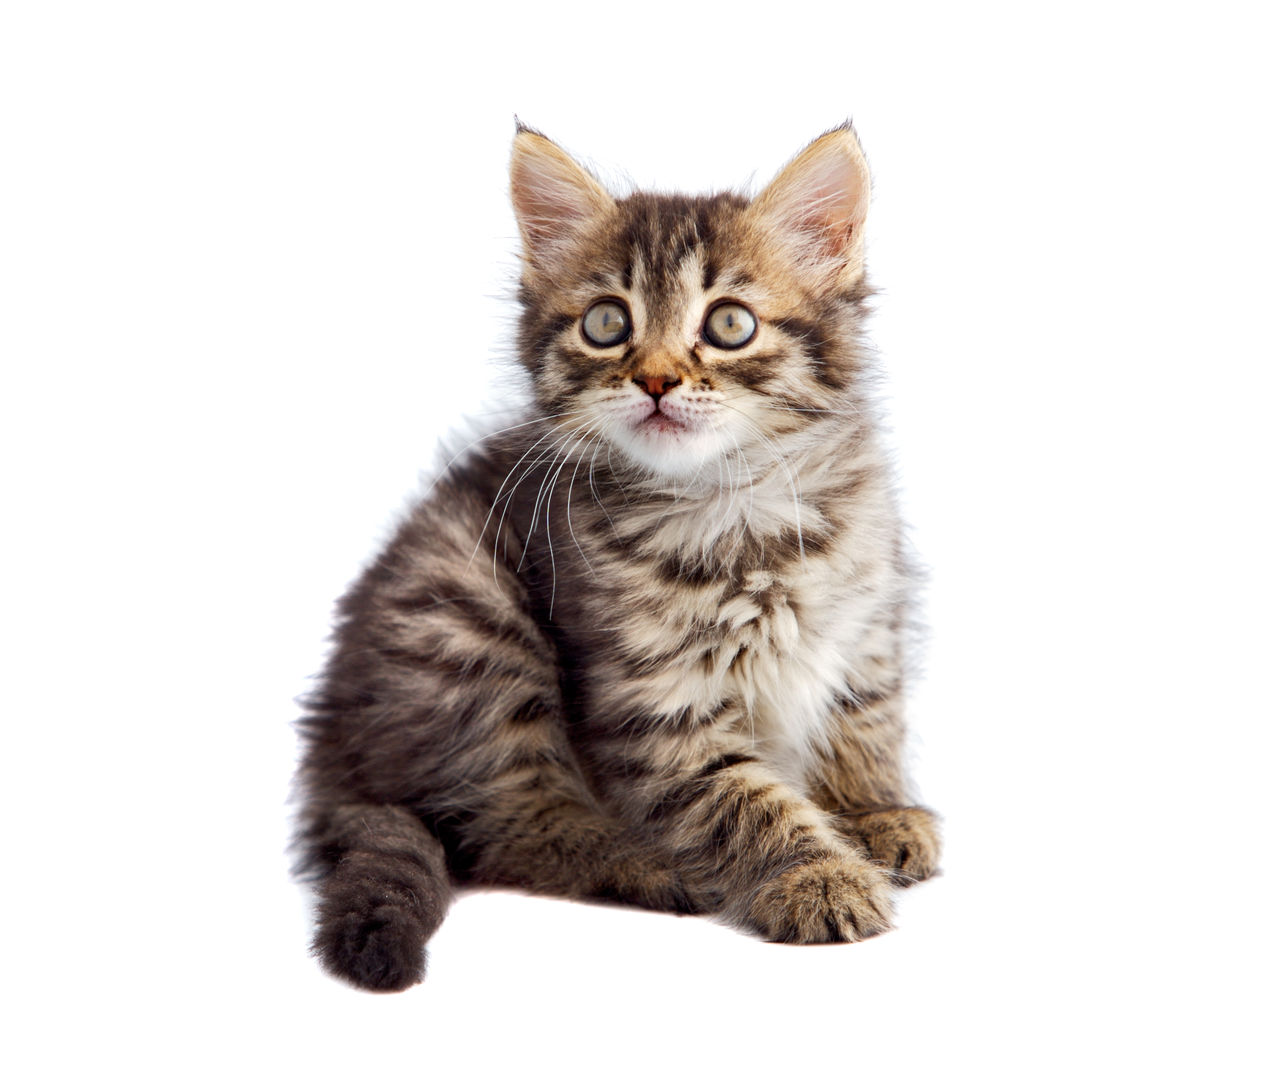 cat, domestic cat, domestic, feline, pets, domestic animals, mammal, studio shot, white background, one animal, indoors, no people, portrait, vertebrate, cut out, looking at camera, kitten, whisker, tabby